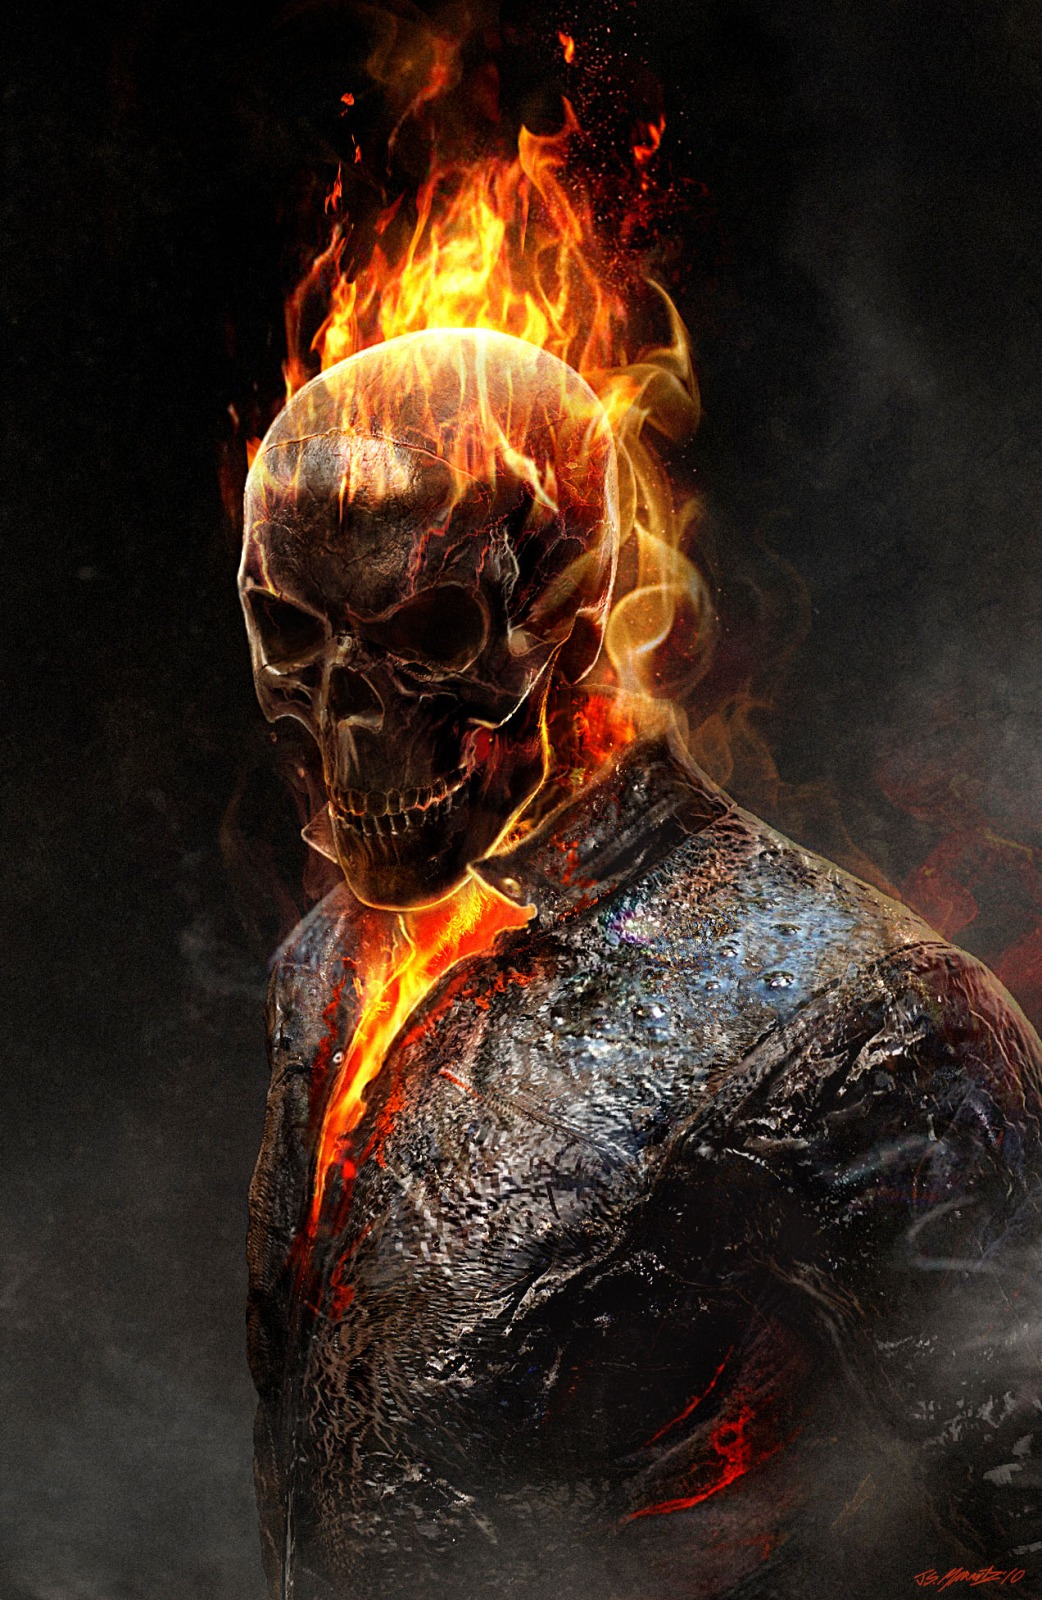 Ghost Rider images ghost rider HD wallpaper and background photos 1042x1600